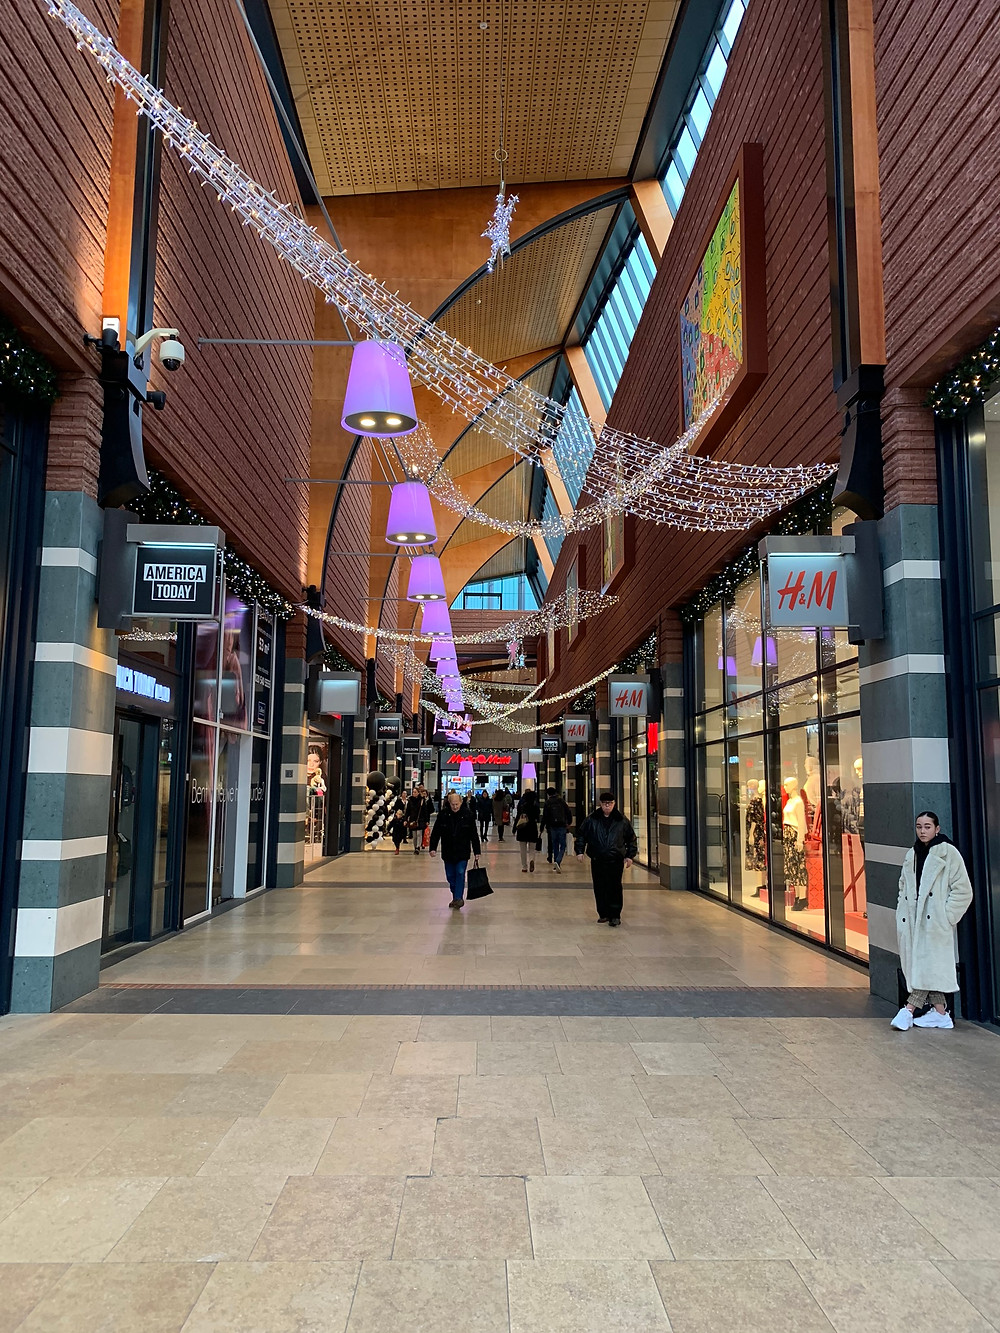 Shopping Mall in Enschede, Netherlands